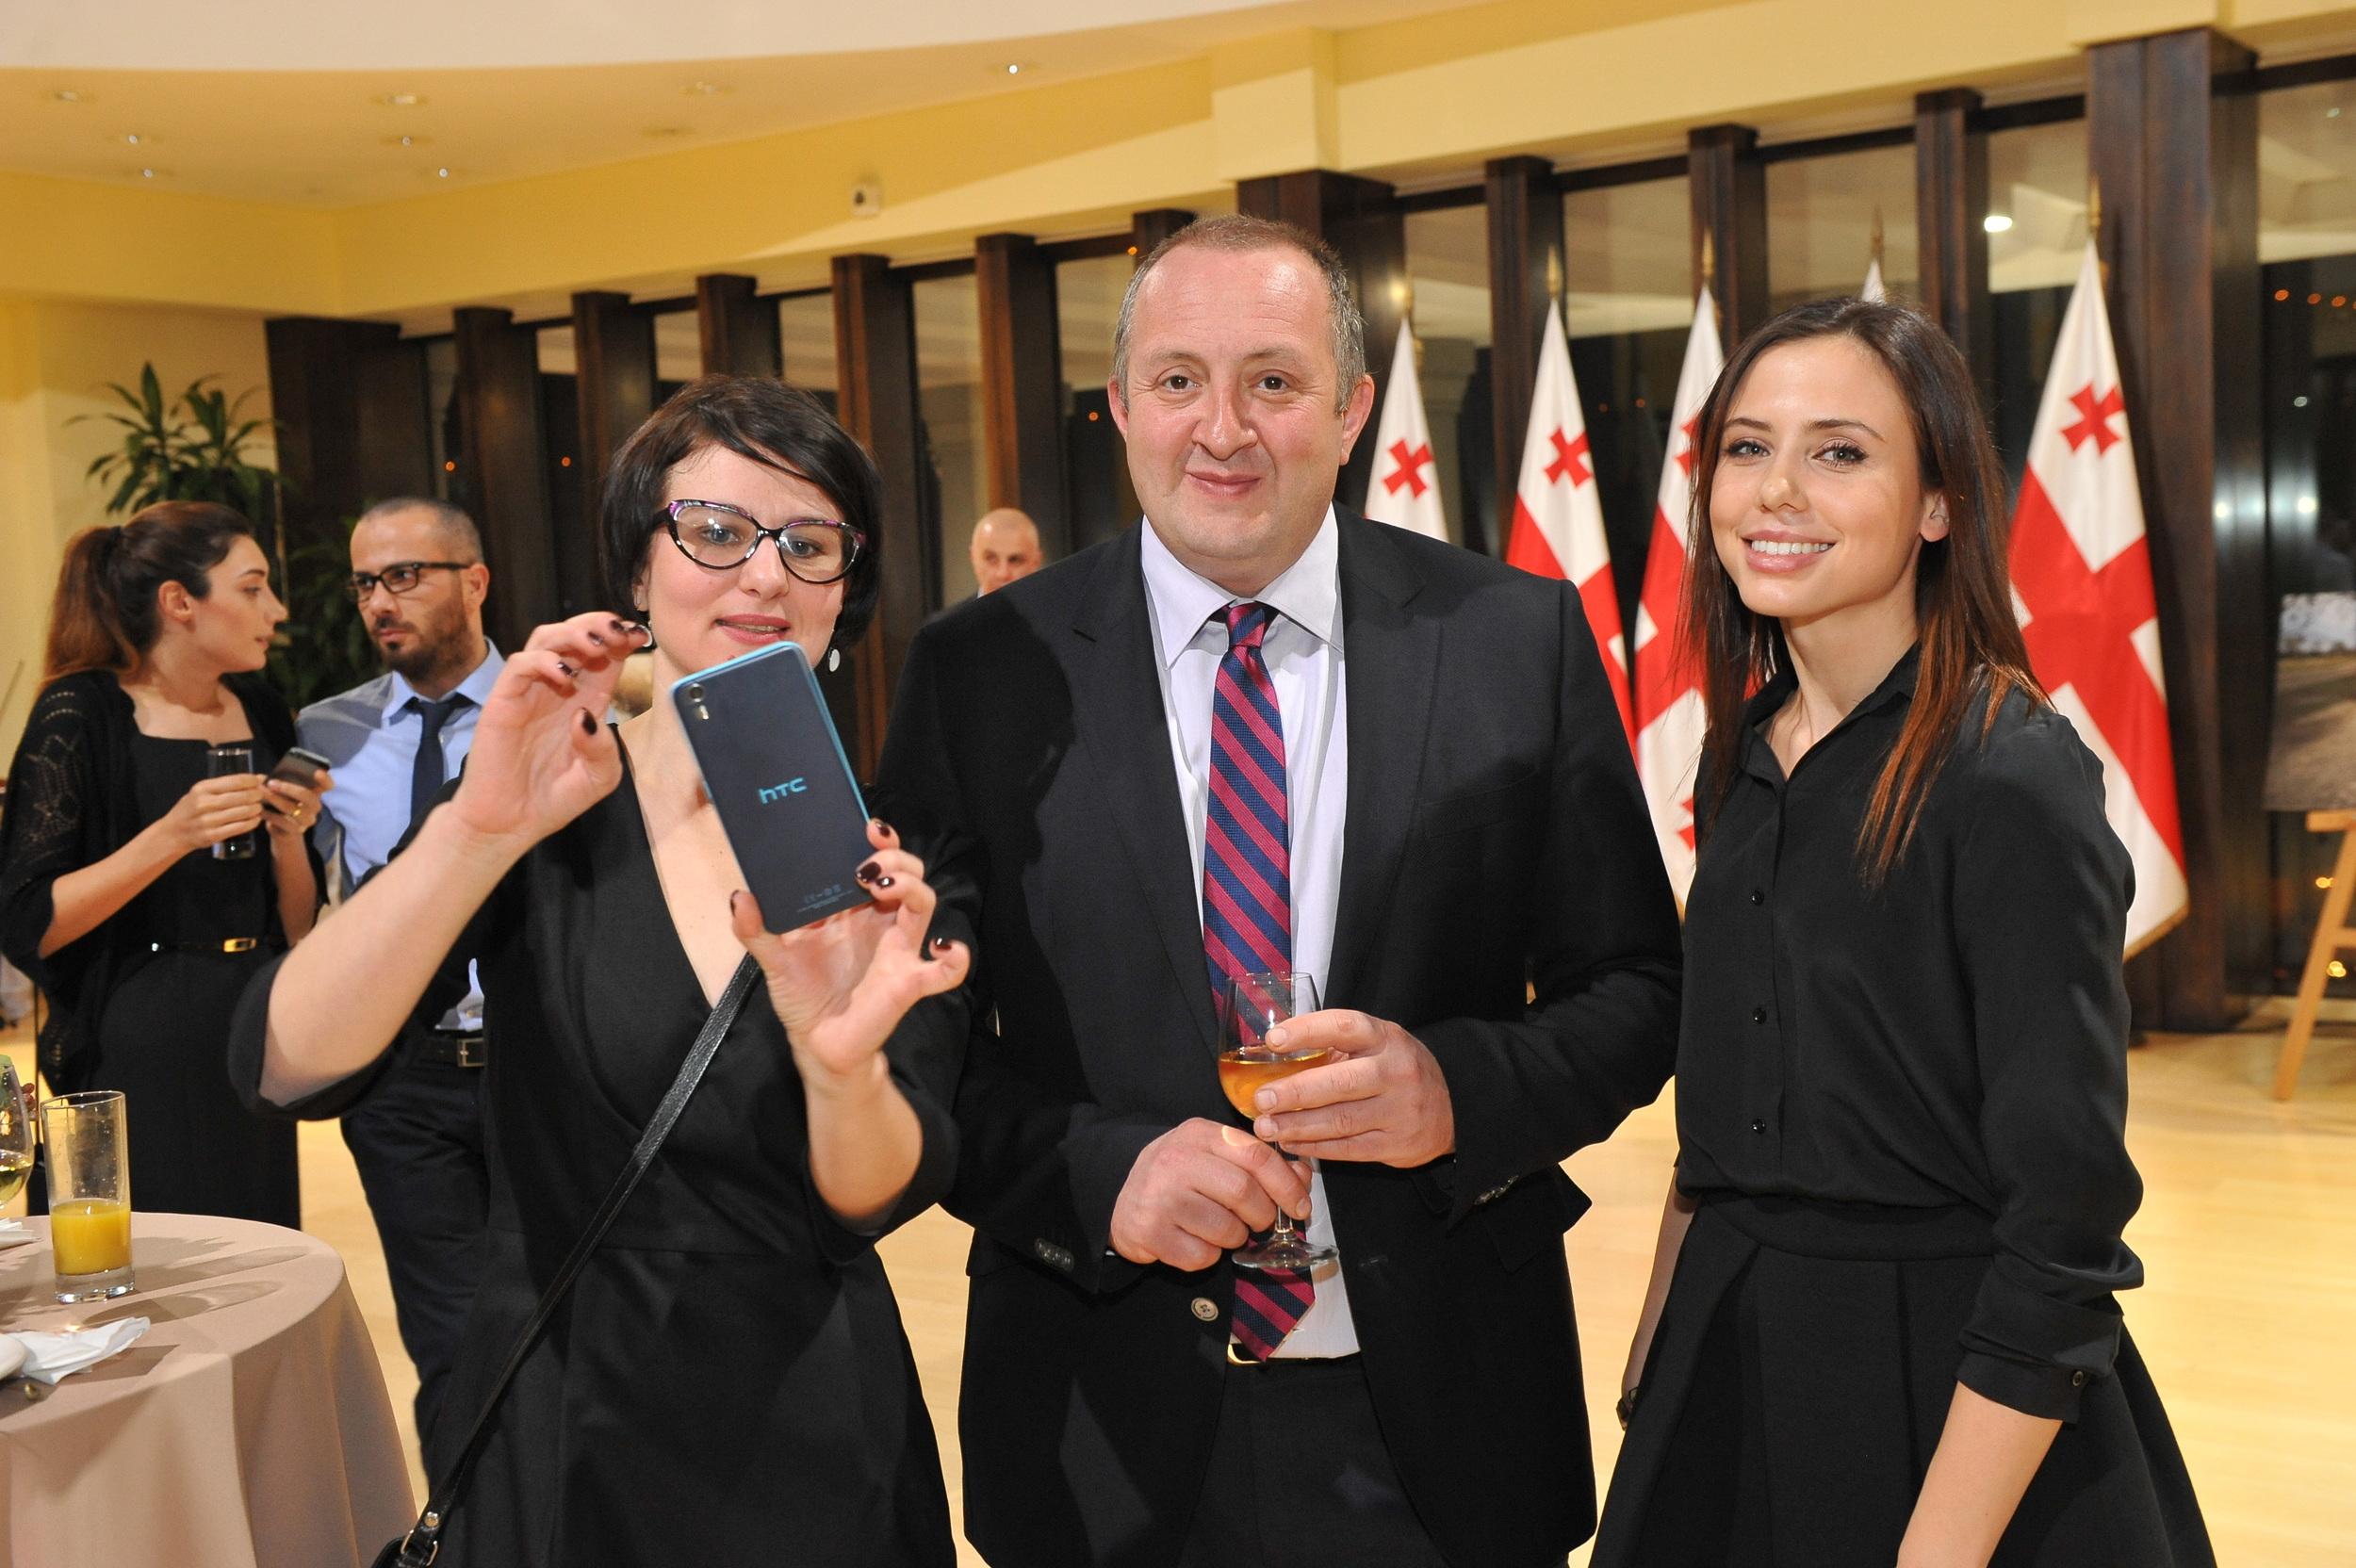 Julia Kockaja and Leila Ismailova with Mr. Giorgi Margvelashvili